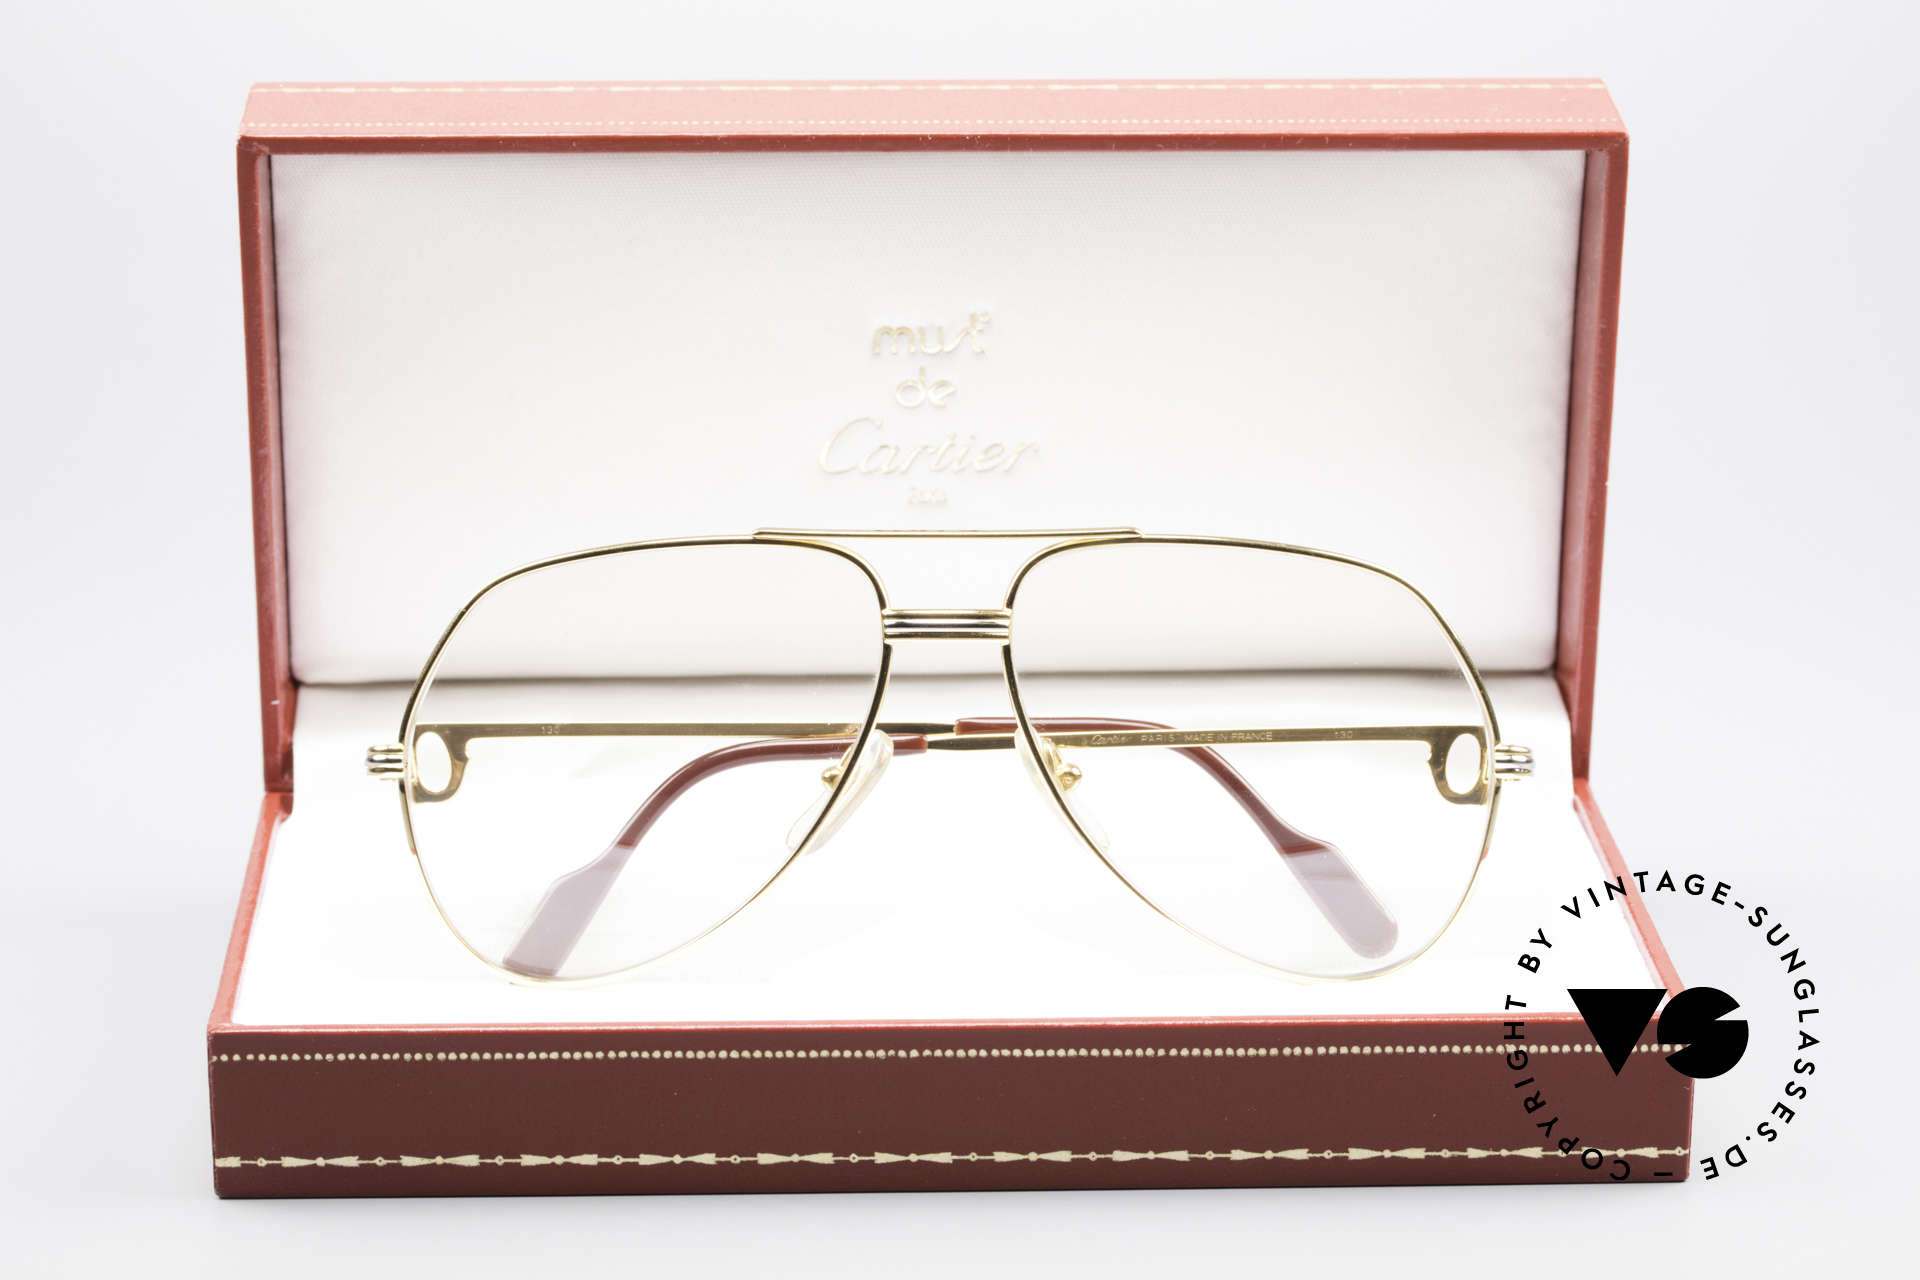 Cartier Vendome LC - M Changeable Cartier Lenses, breath on the lenses to make the CARTIER LOGO visible!, Made for Men and Women